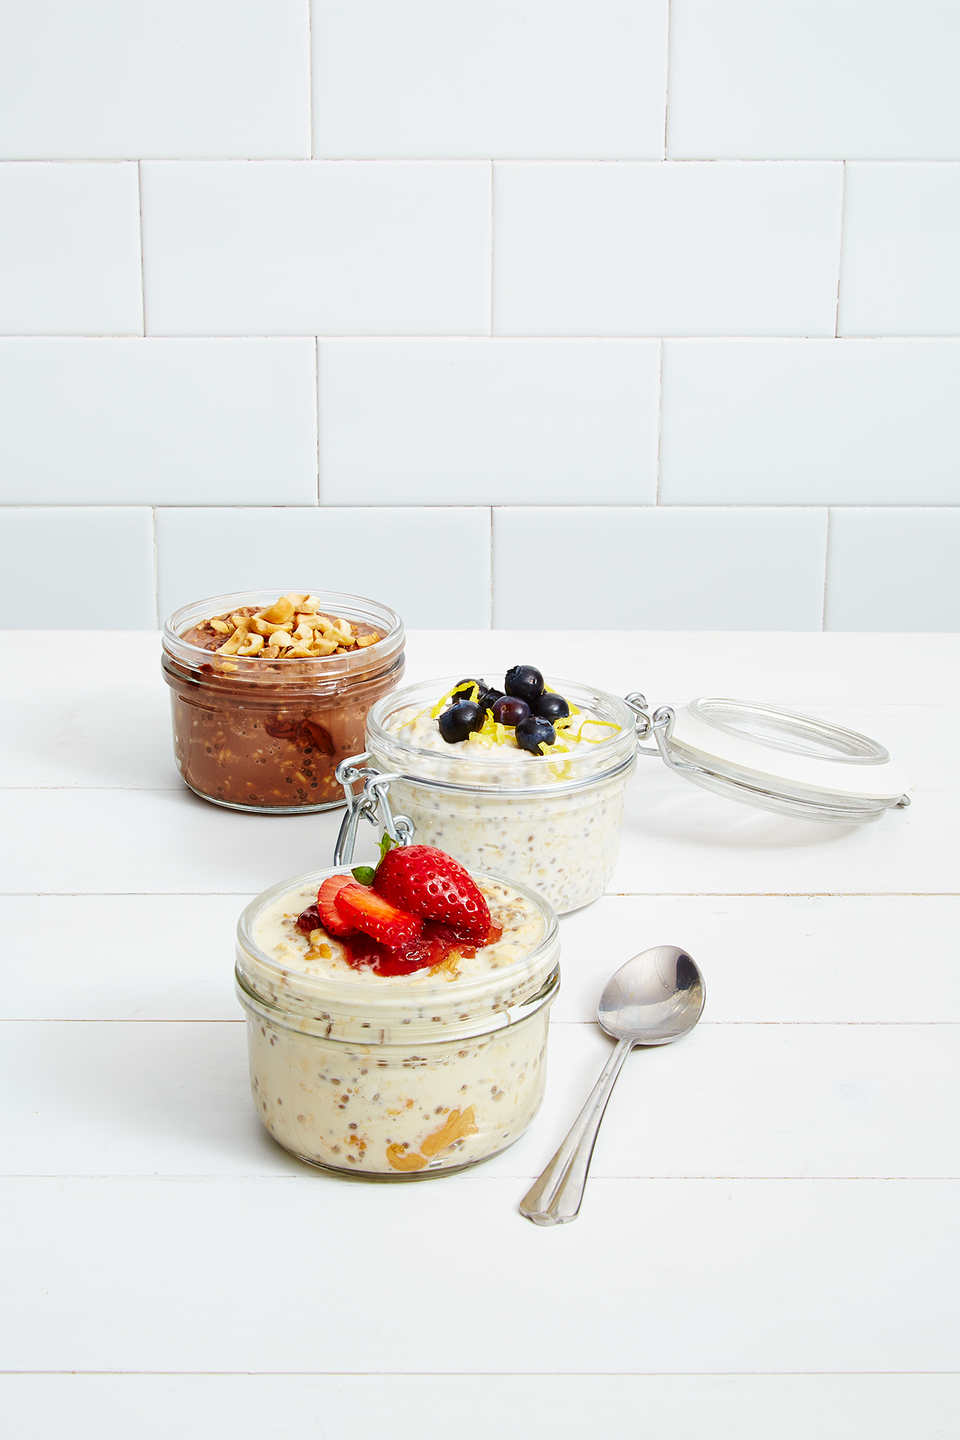 <p>Spend a few minutes prepping tonight, and you'll be rewarded with a morning meal that's way more inspiring than a bowl of cereal: In a mason jar, mix 1/2 cup <strong>old-</strong><strong>fashioned oats</strong>, 1 Tbsp <strong>chia seeds</strong>, 1 Tbsp <strong>honey</strong> and 3/4 cup<strong> coconut milk</strong>. Cover, shake and chill overnight. In the morning, add <strong>lemon zest</strong>, <strong>nuts</strong> or <strong>berries</strong> and dig in!</p>